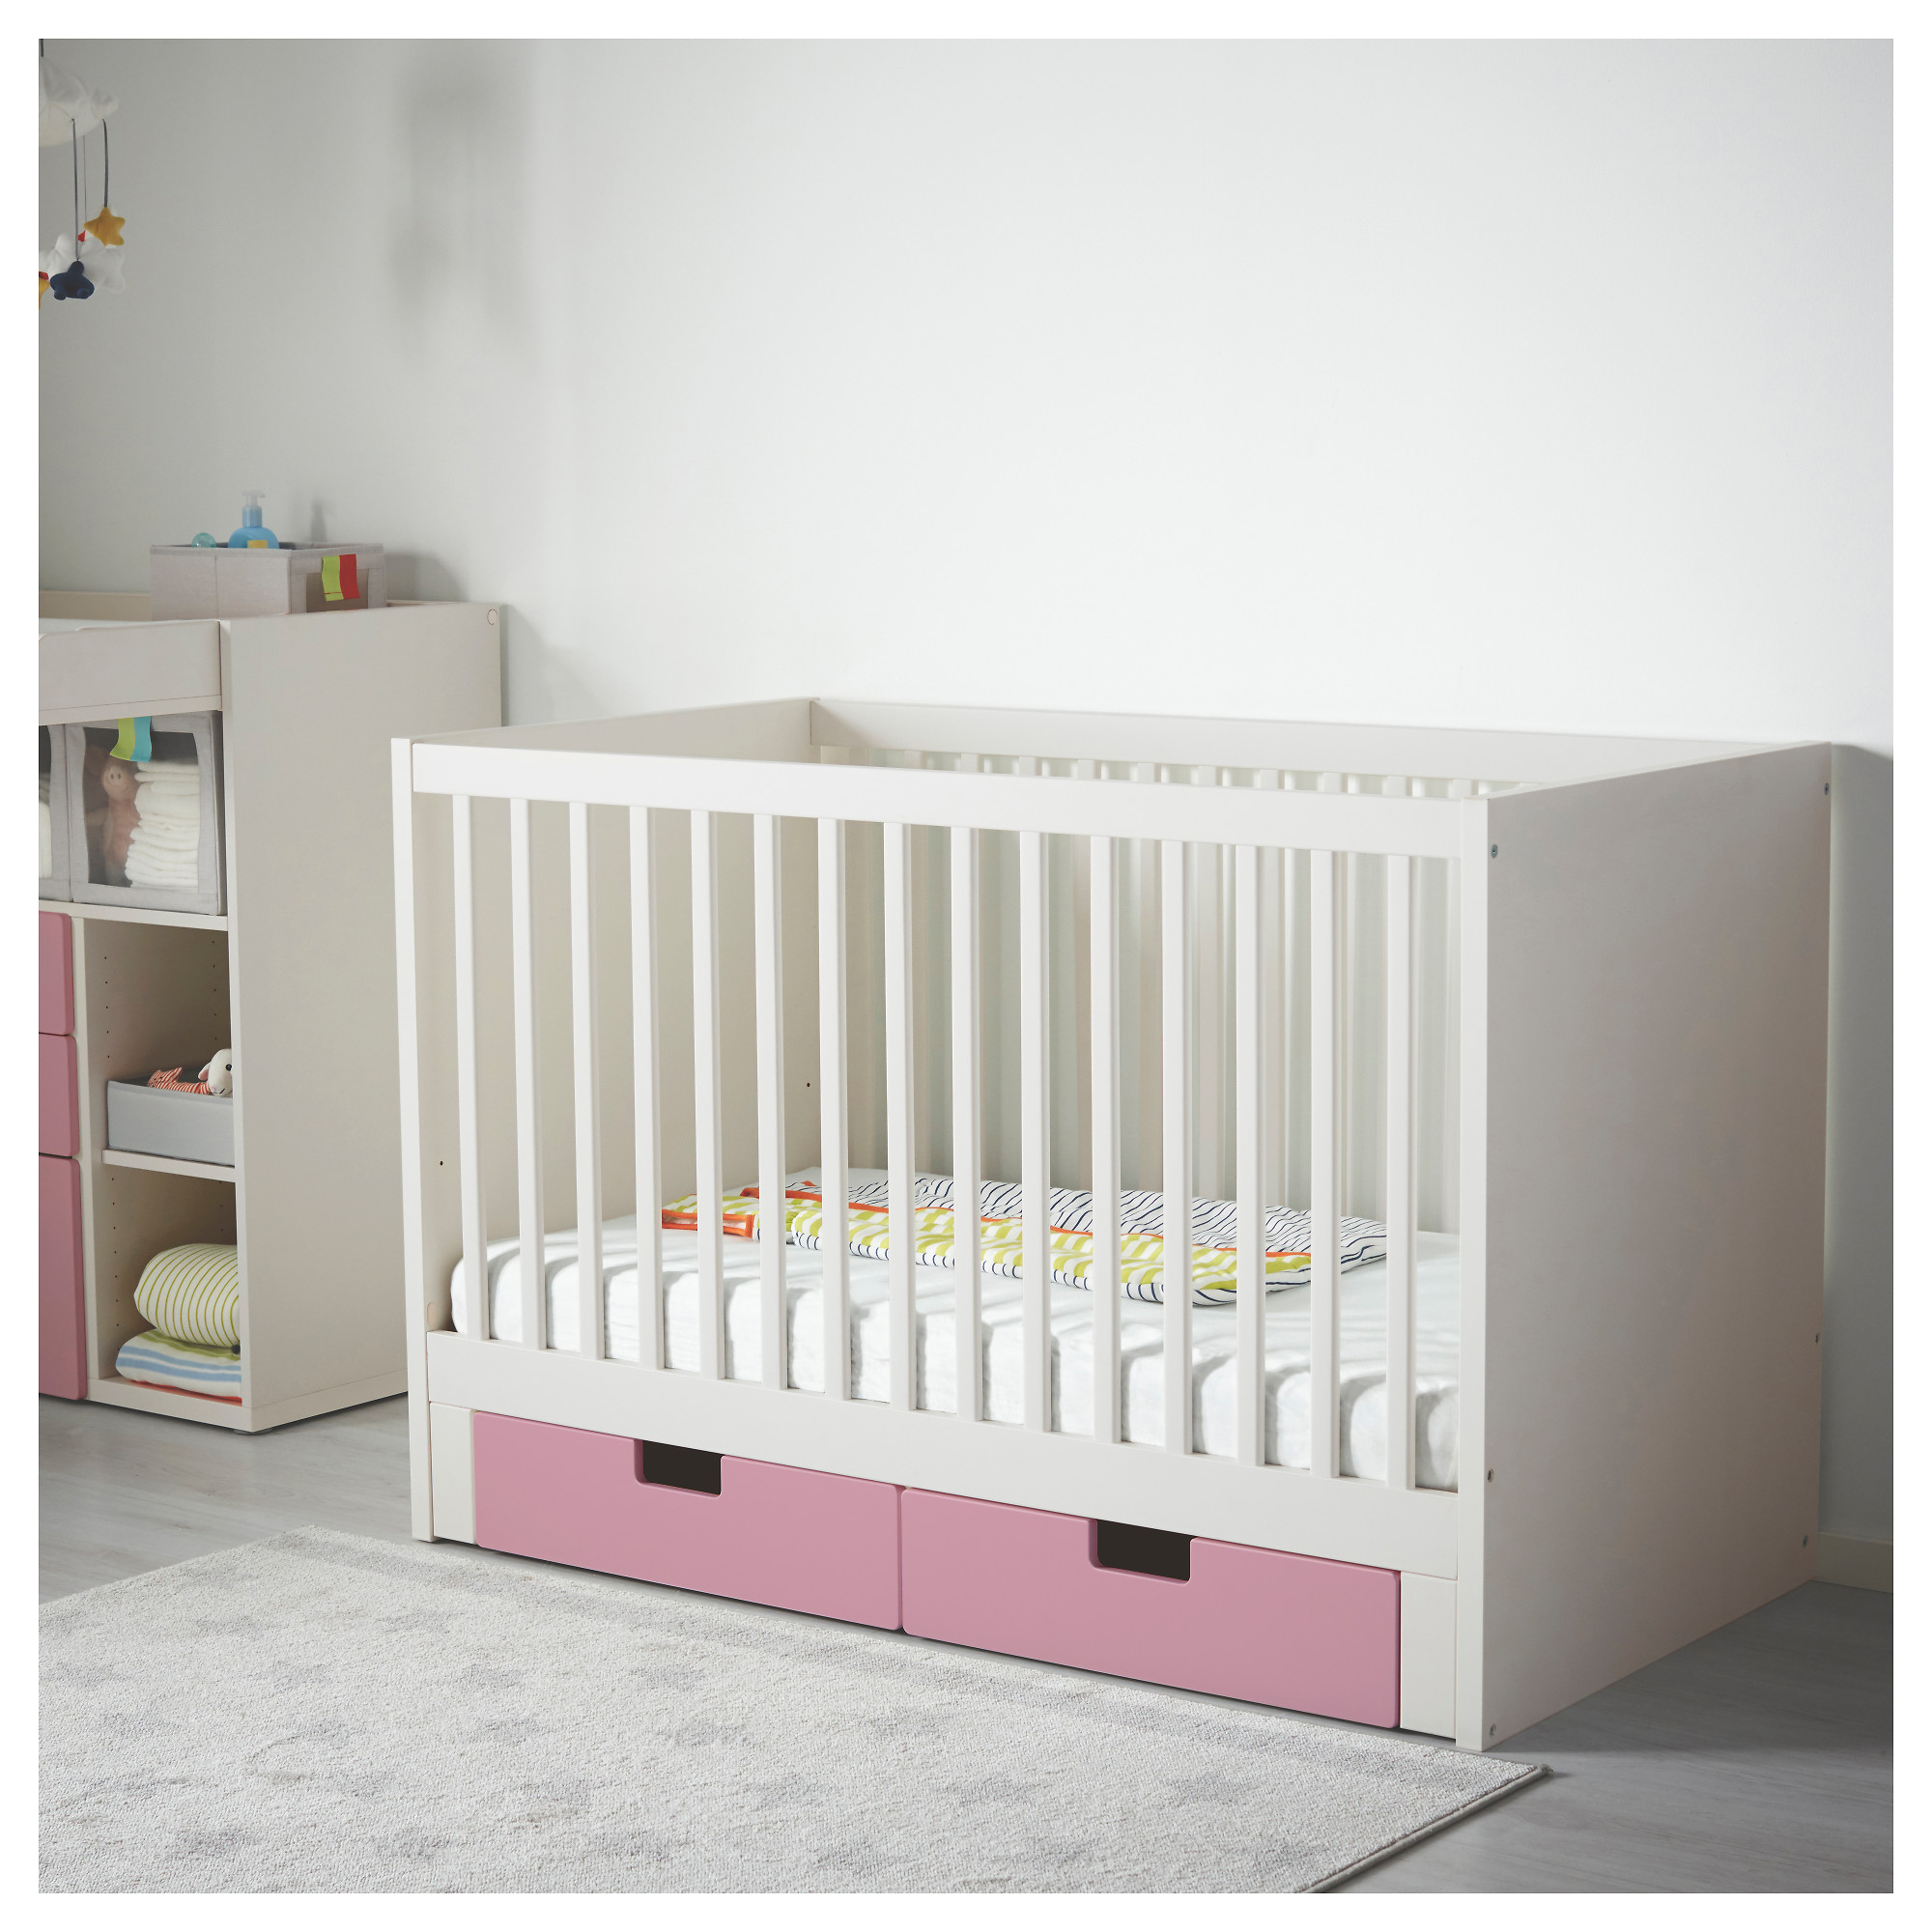 Baby cribs york region - Baby Cribs York Region 20